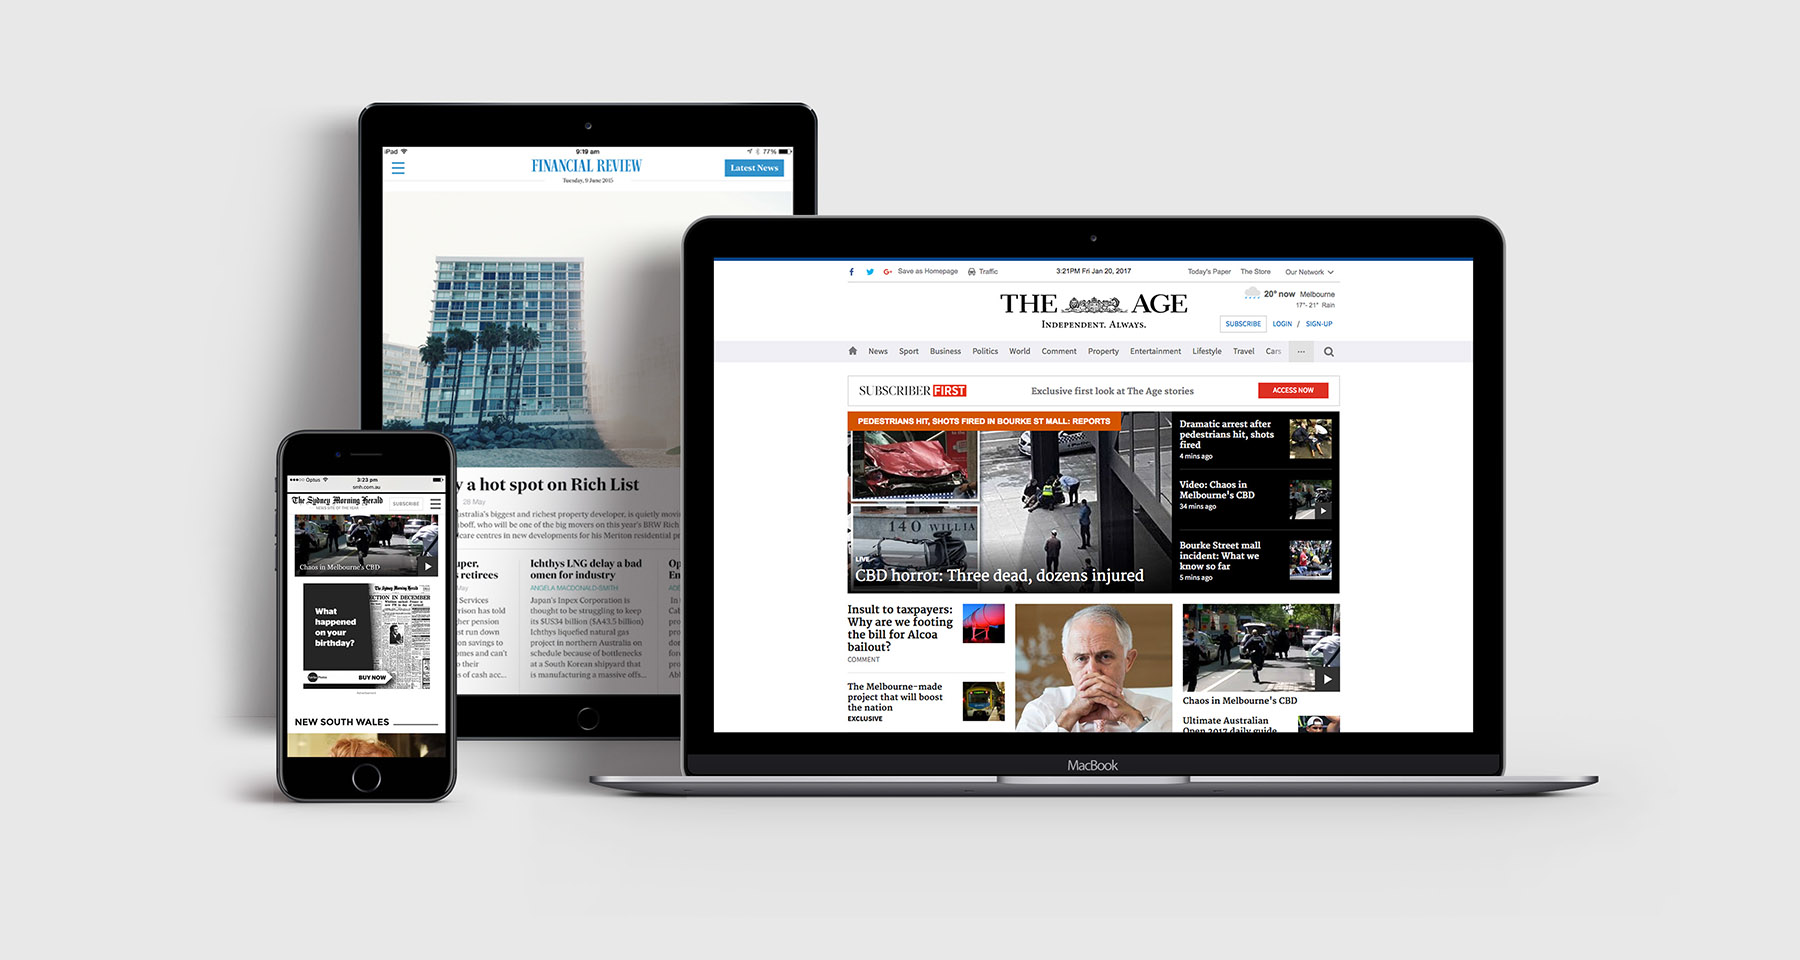 Fairfax corporate subscriptions revenue +50% with customised subscription model